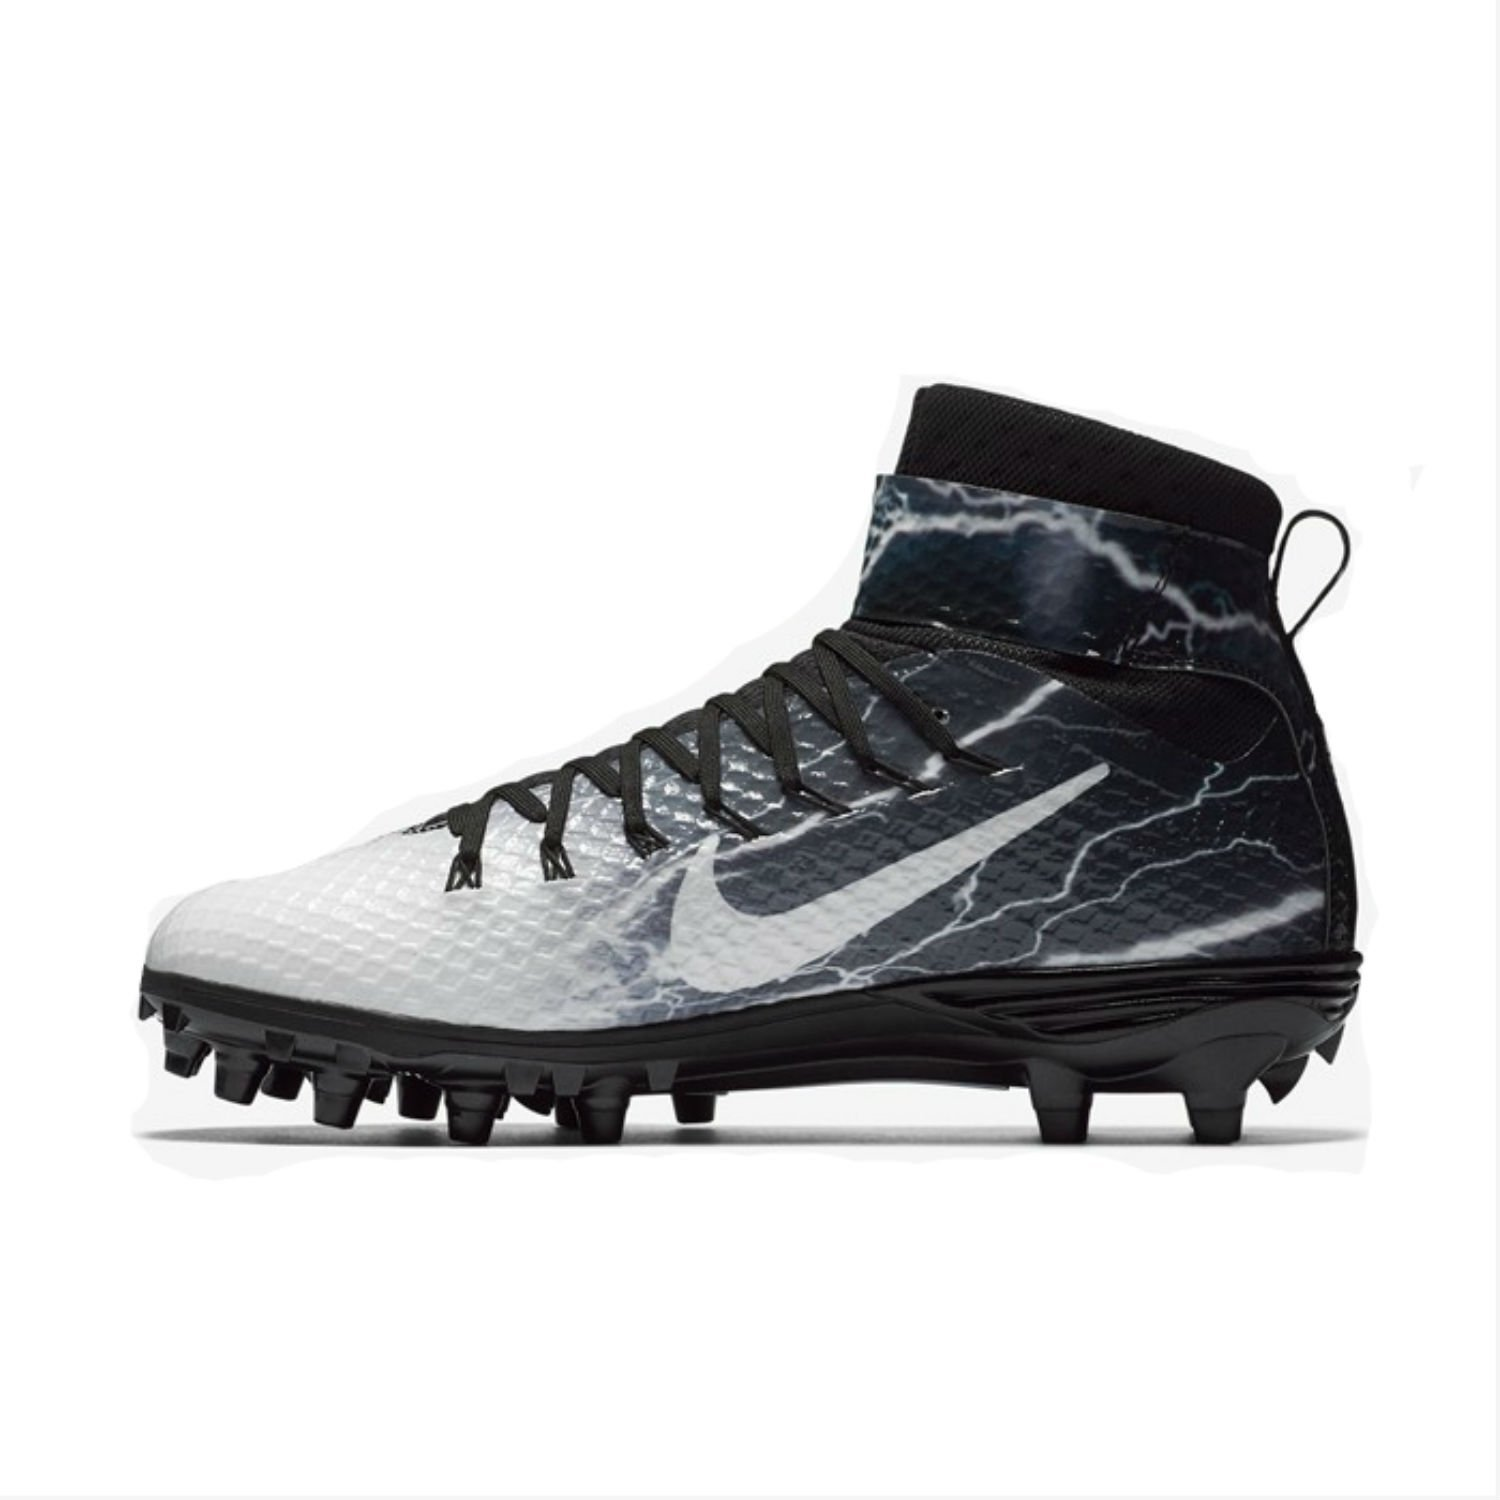 half off 4abc2 9d52a Nike Force Mens Lunarbeast Elite TD Lightning Football Cleats Black-White   Buy Online at Low Prices in India - Amazon.in